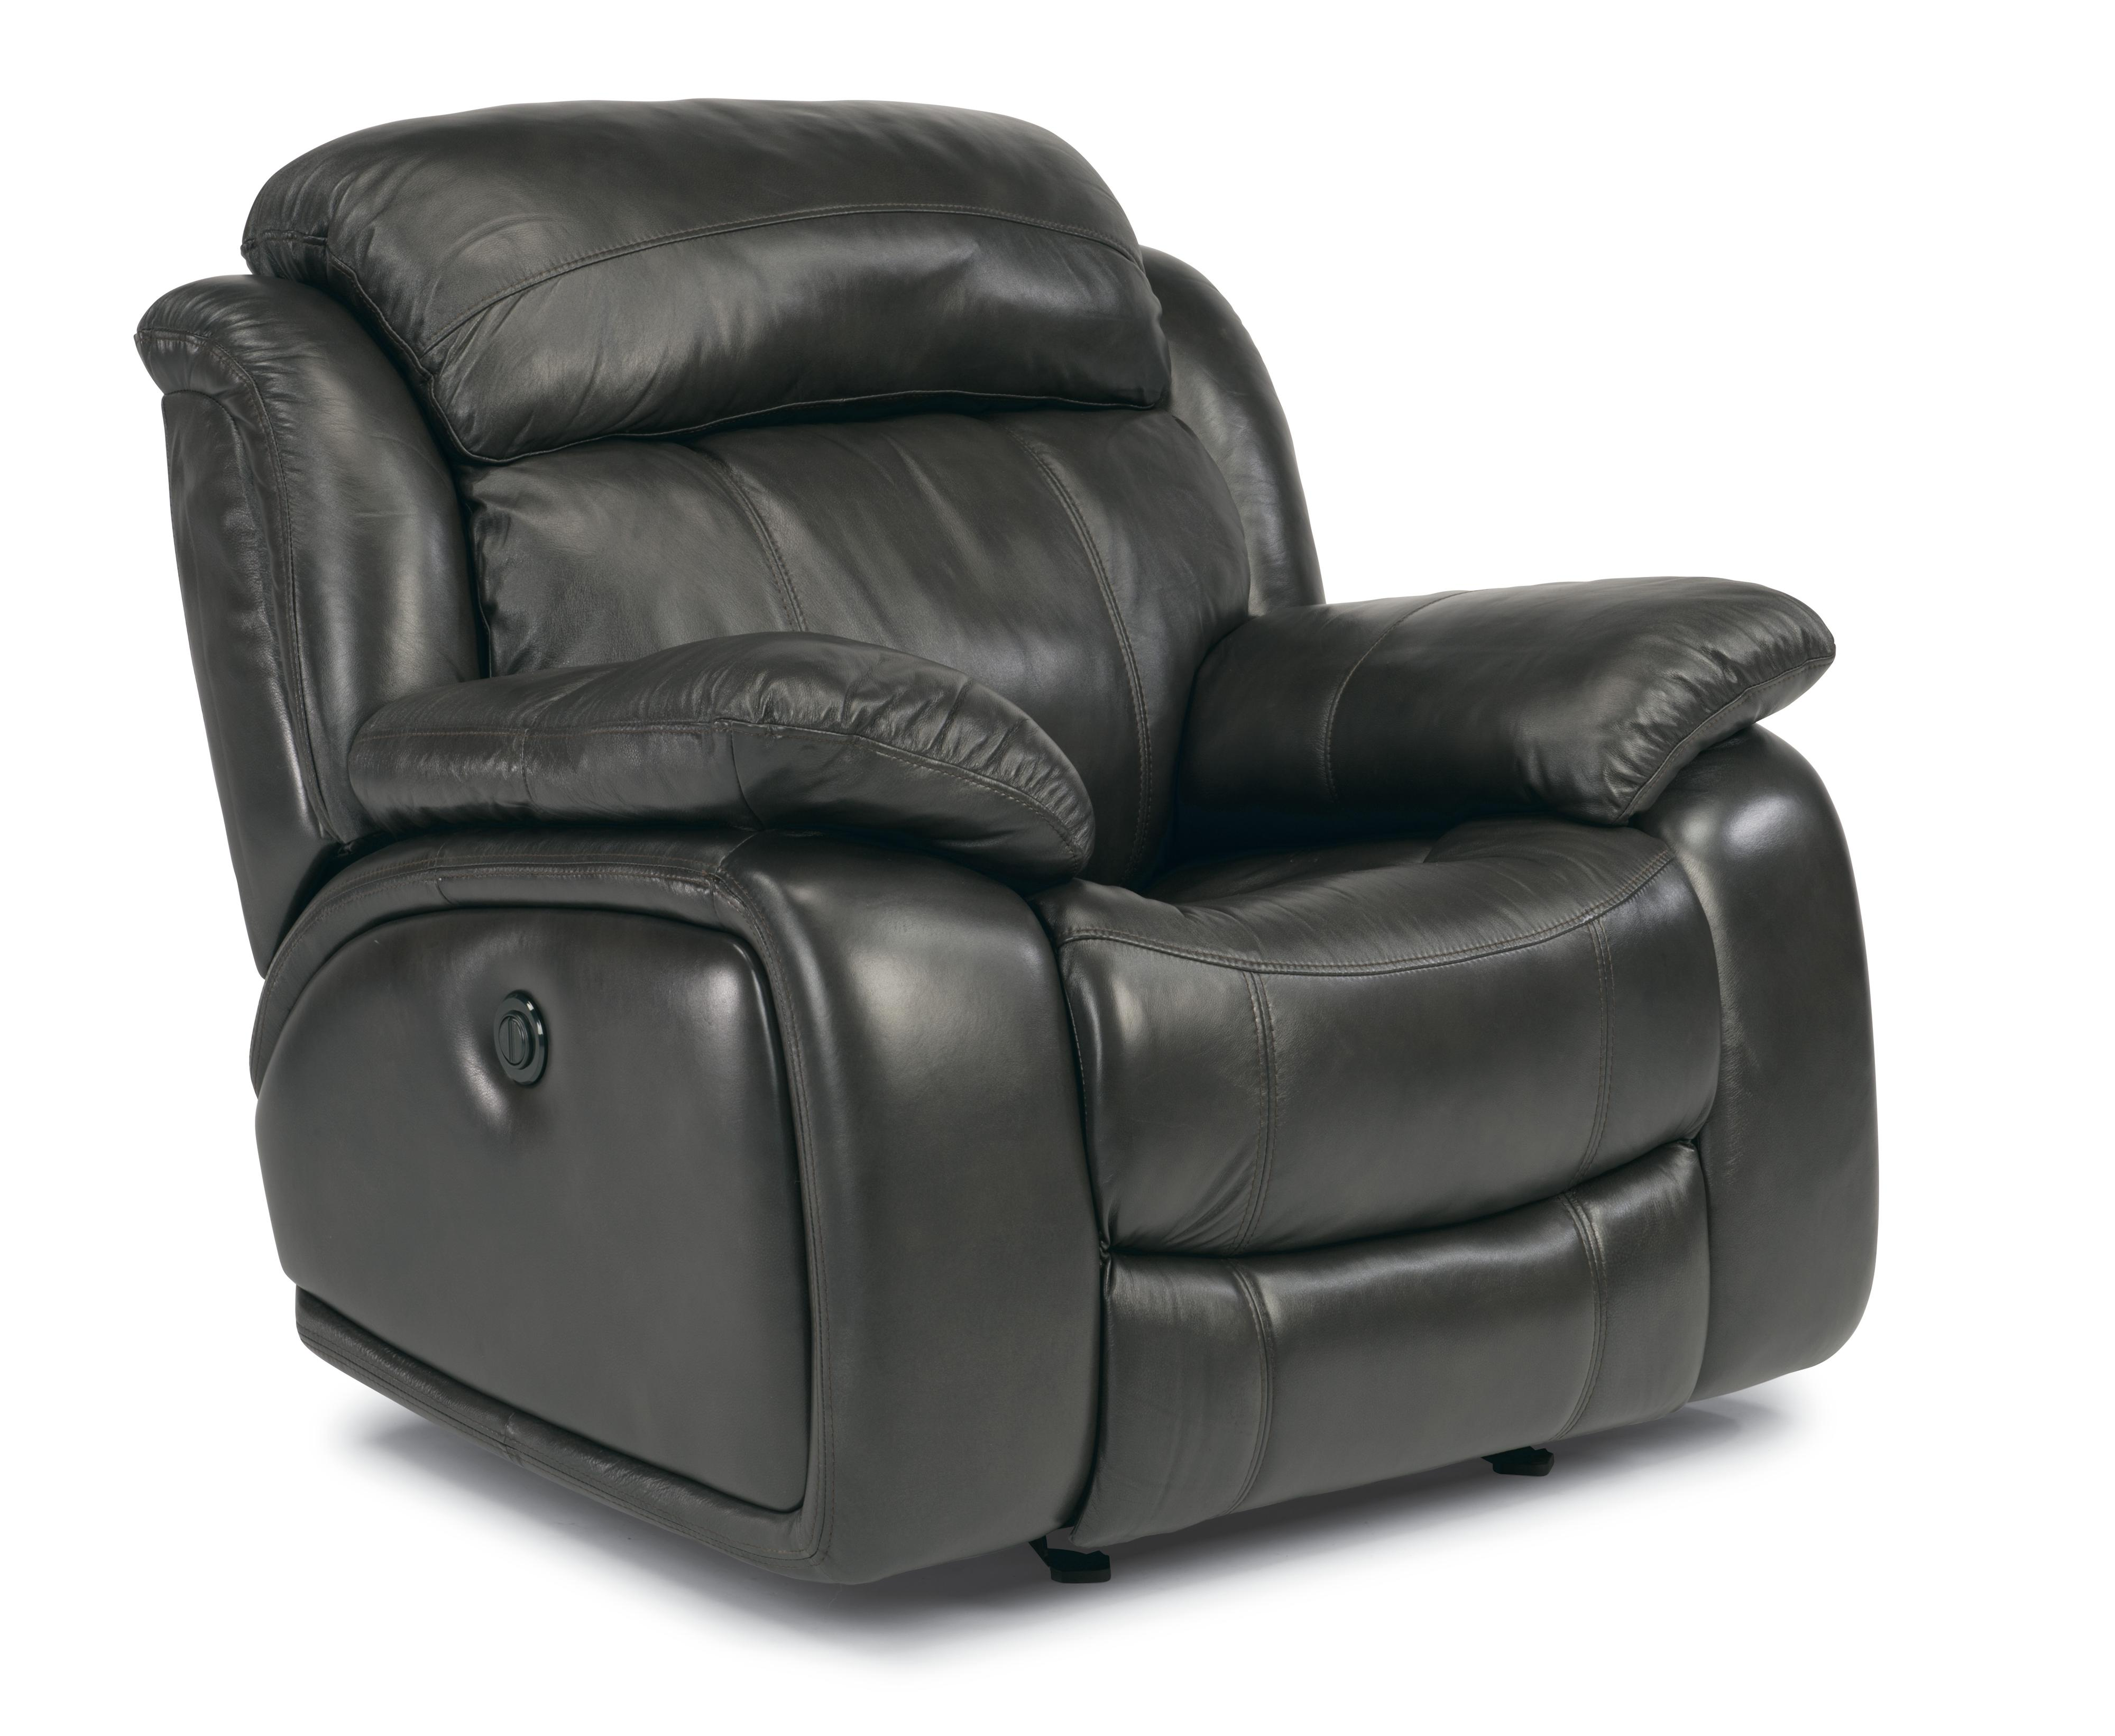 Flexsteel Latitudes-Como  Power Glider Leather Recliner - Item Number: 1409-54P